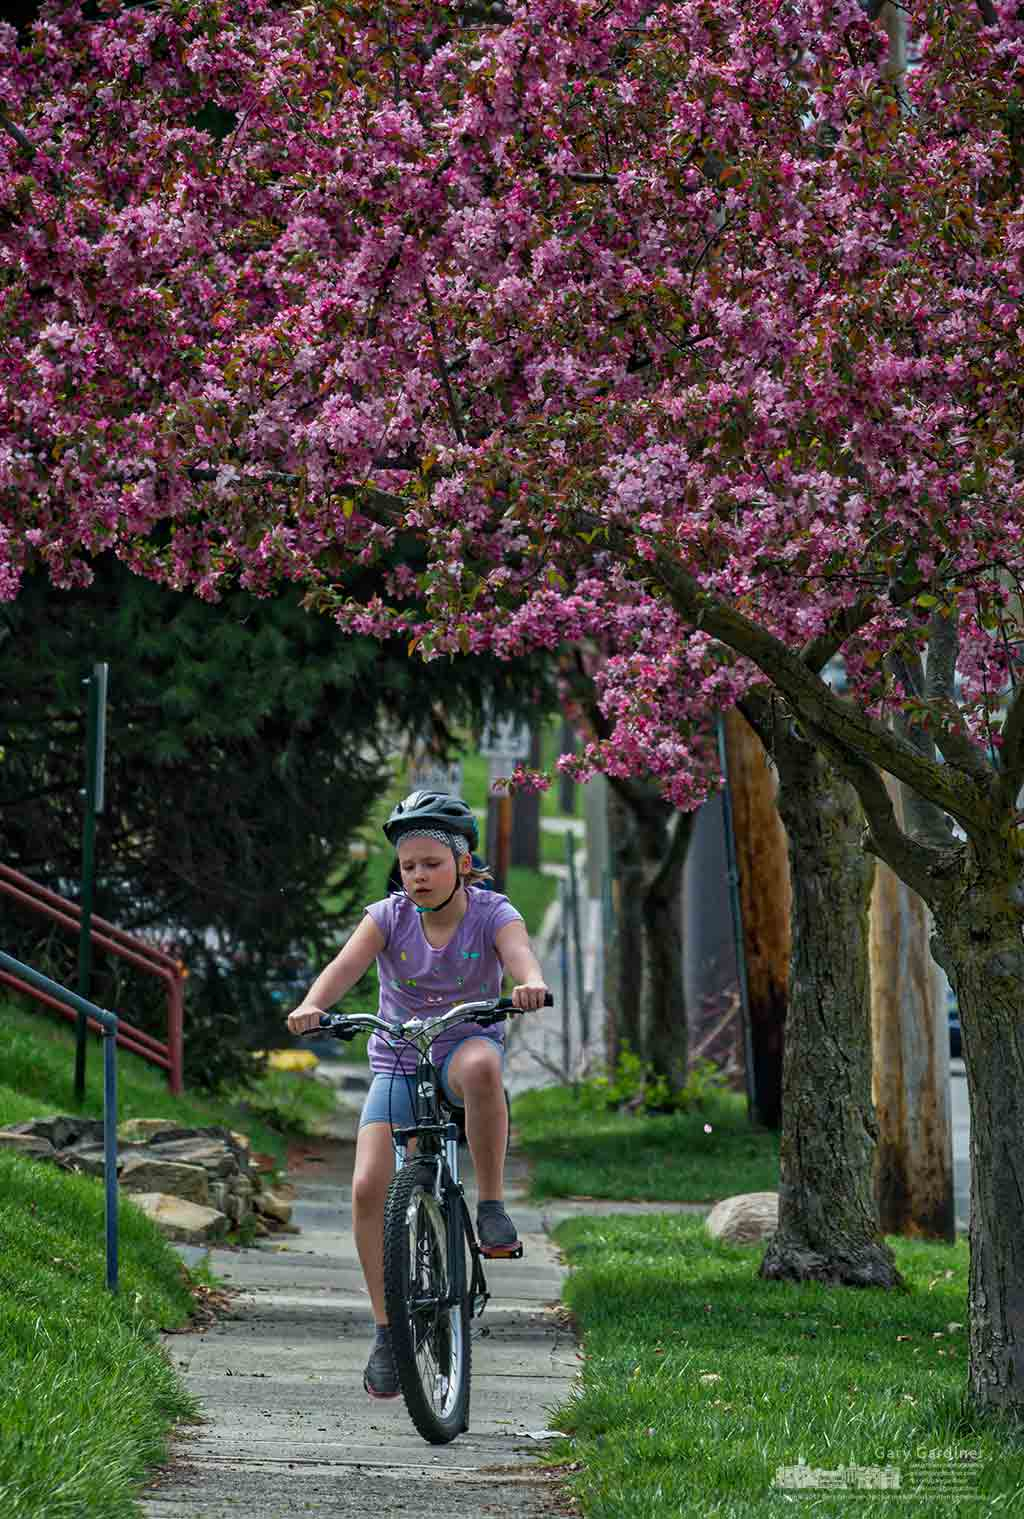 A young girl rides her bike home after school beneath a canopy of flowering trees. My Final Photo for April 13, 2017.